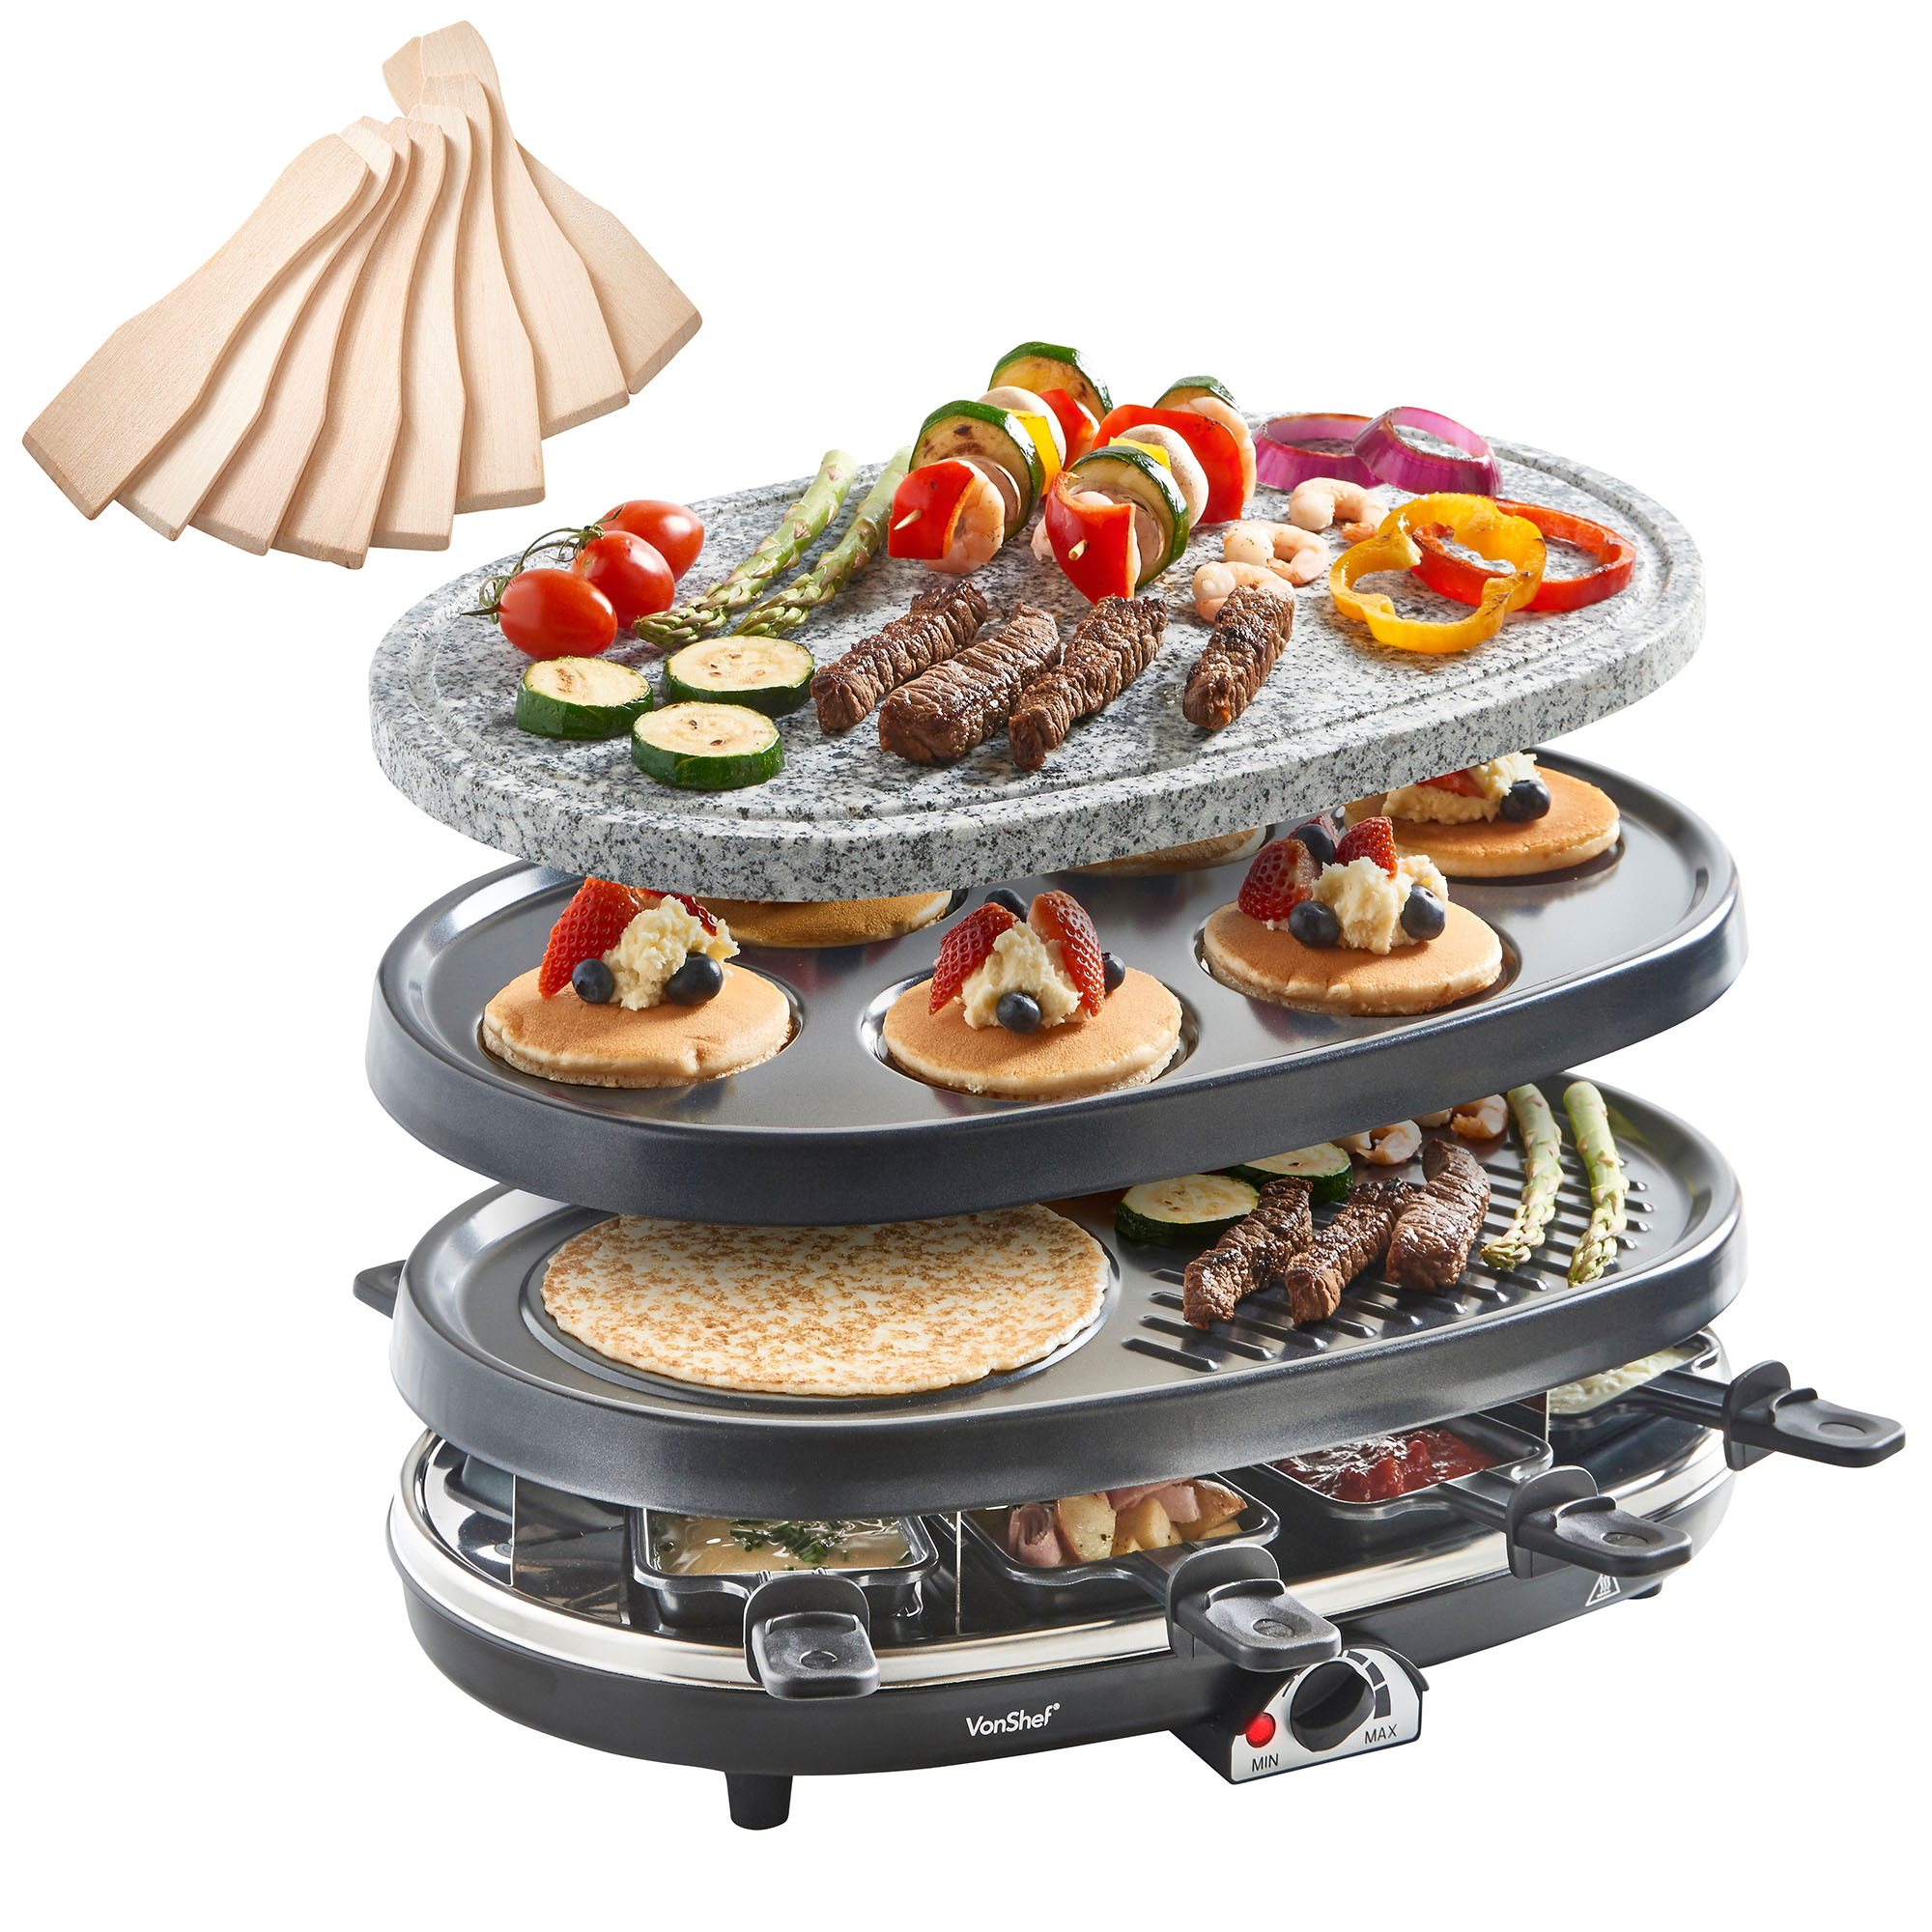 vonshef 3 in 1 natural stone raclette grill crepe tapas maker fondue hotplate ebay. Black Bedroom Furniture Sets. Home Design Ideas